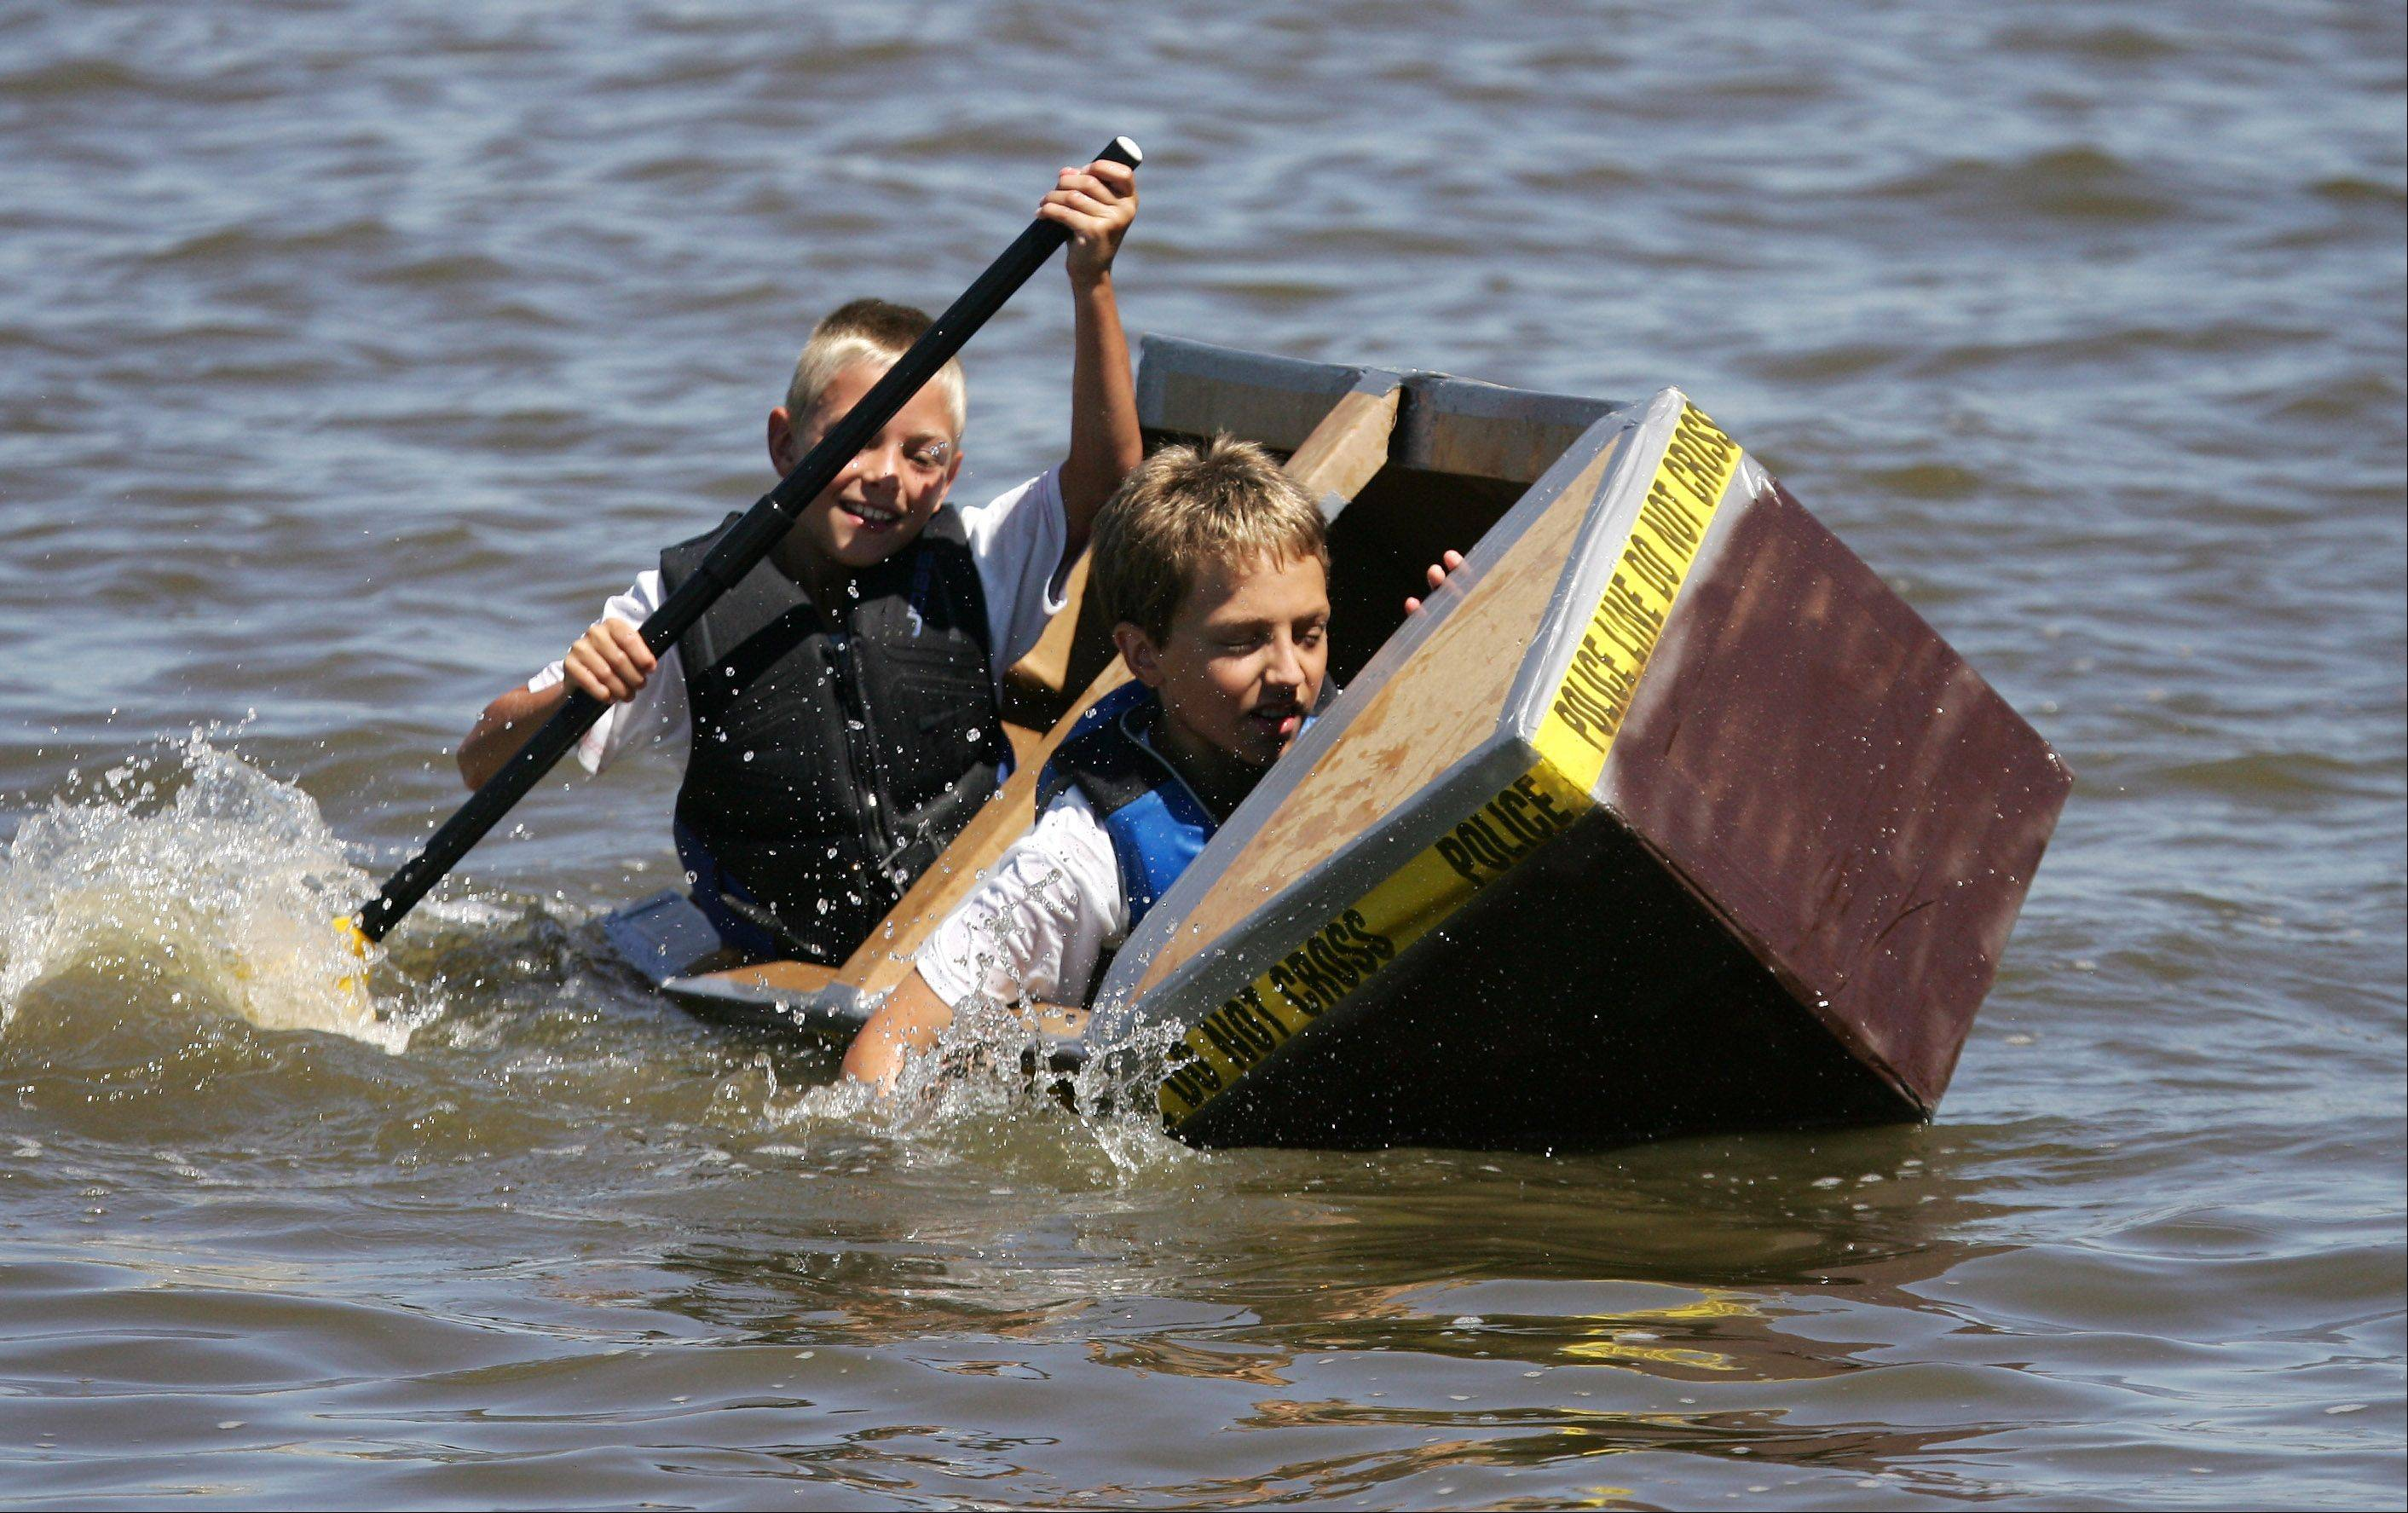 Kaden Kane, 9, and Max Myzka, 10, both of Palatine, participate in last year's Fox Lake Cardboard Boat Race.